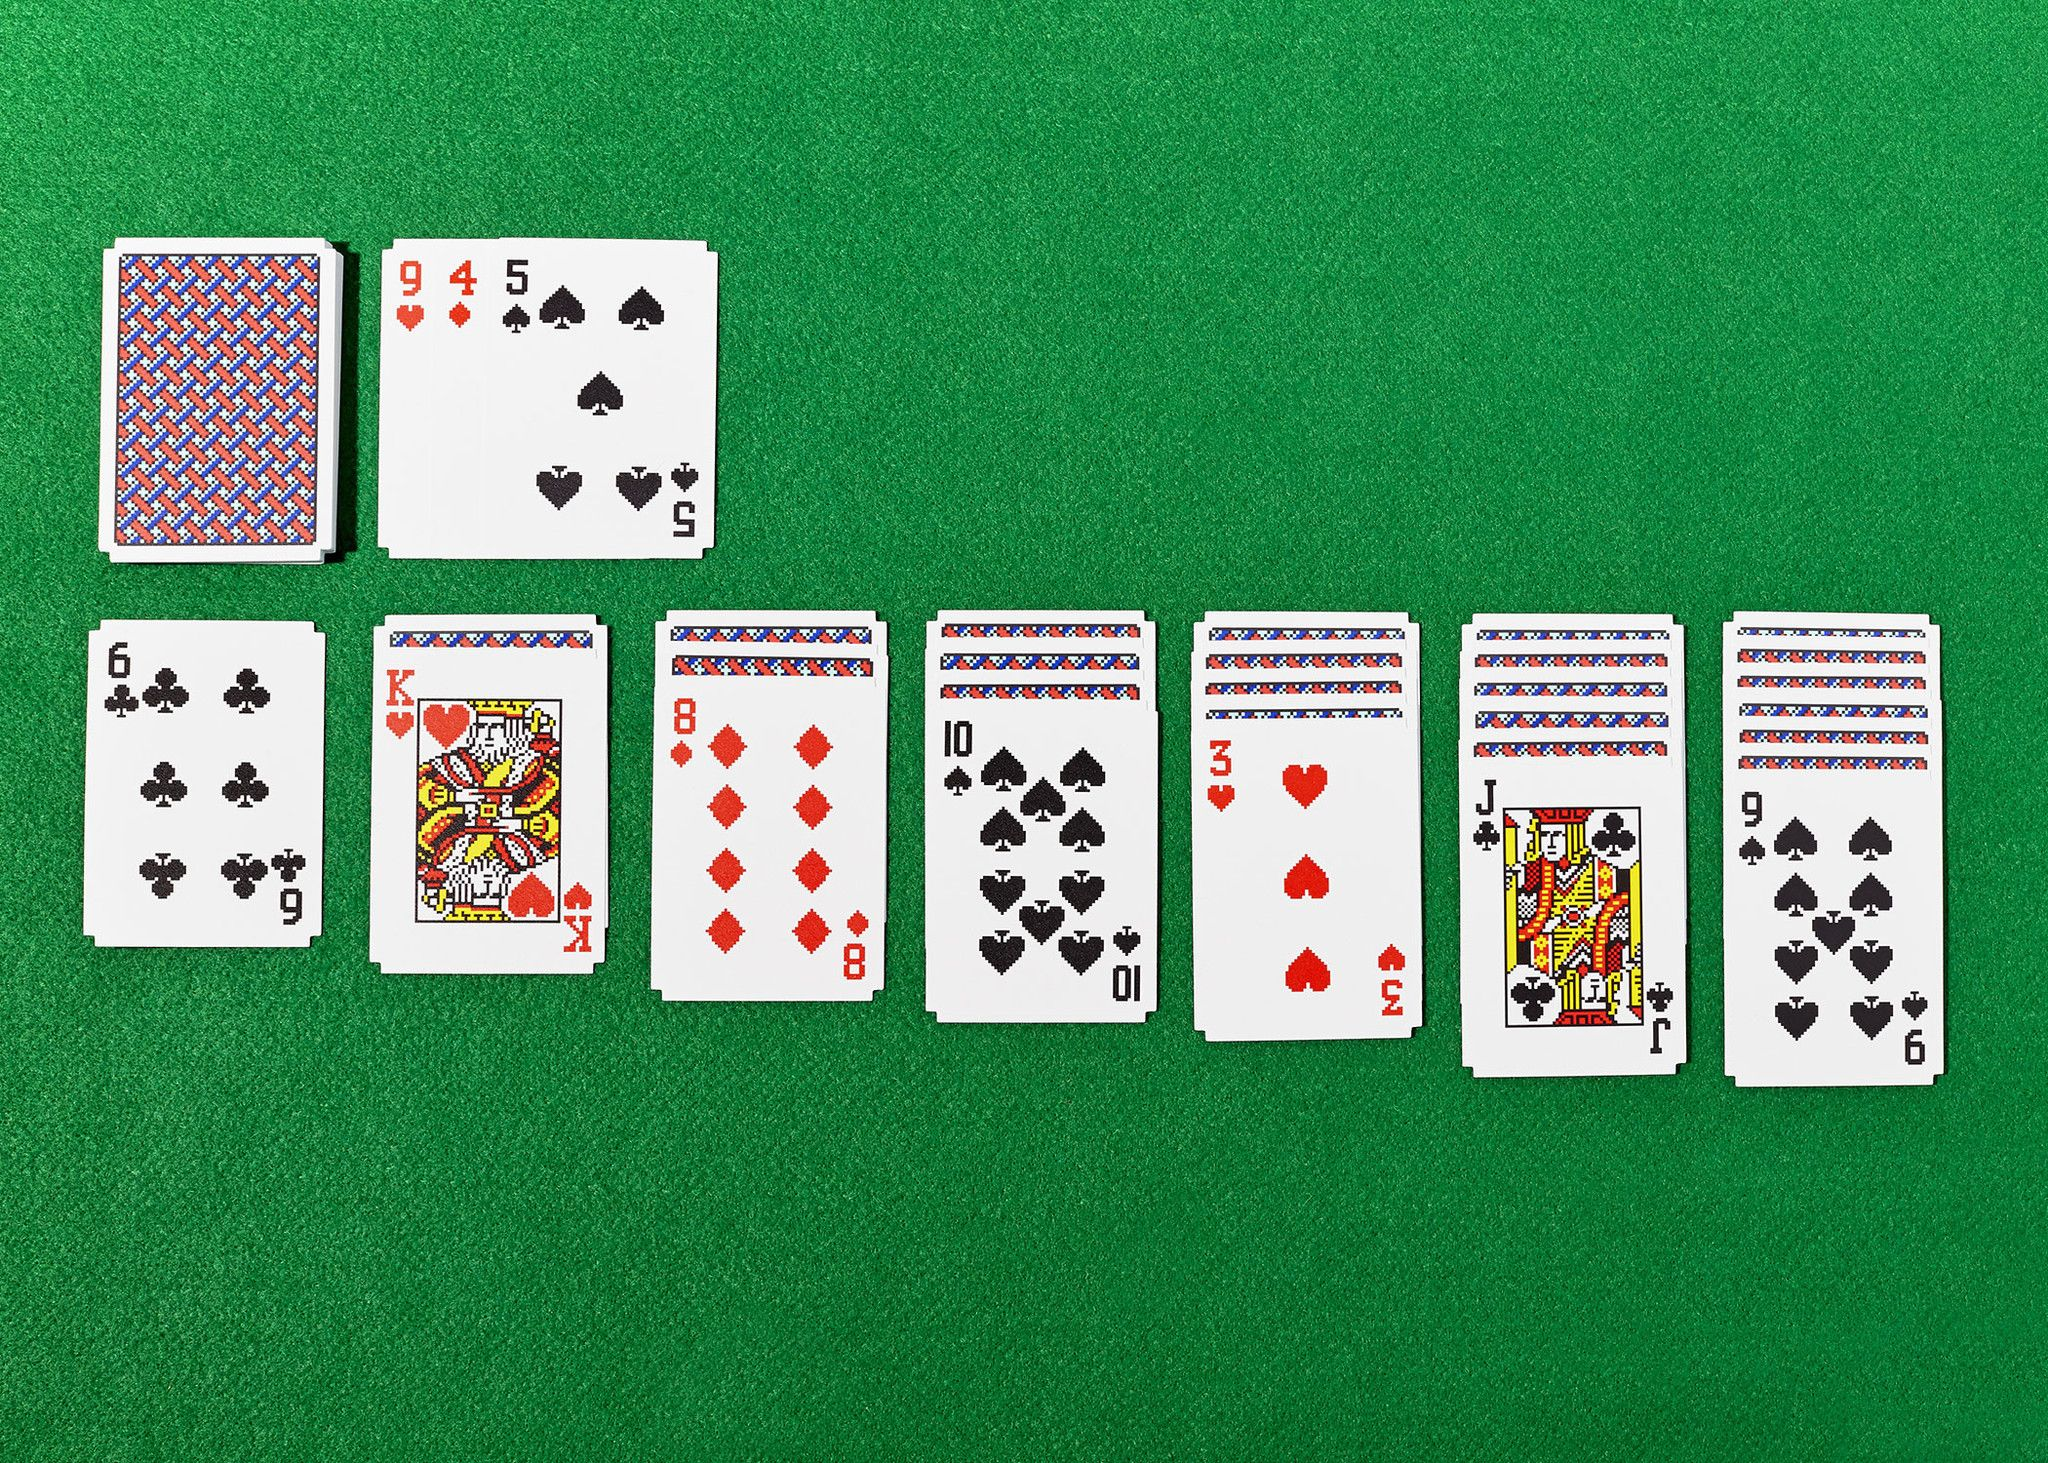 Solitaire Cards Solitaire Cards Solitaire Card Game Online